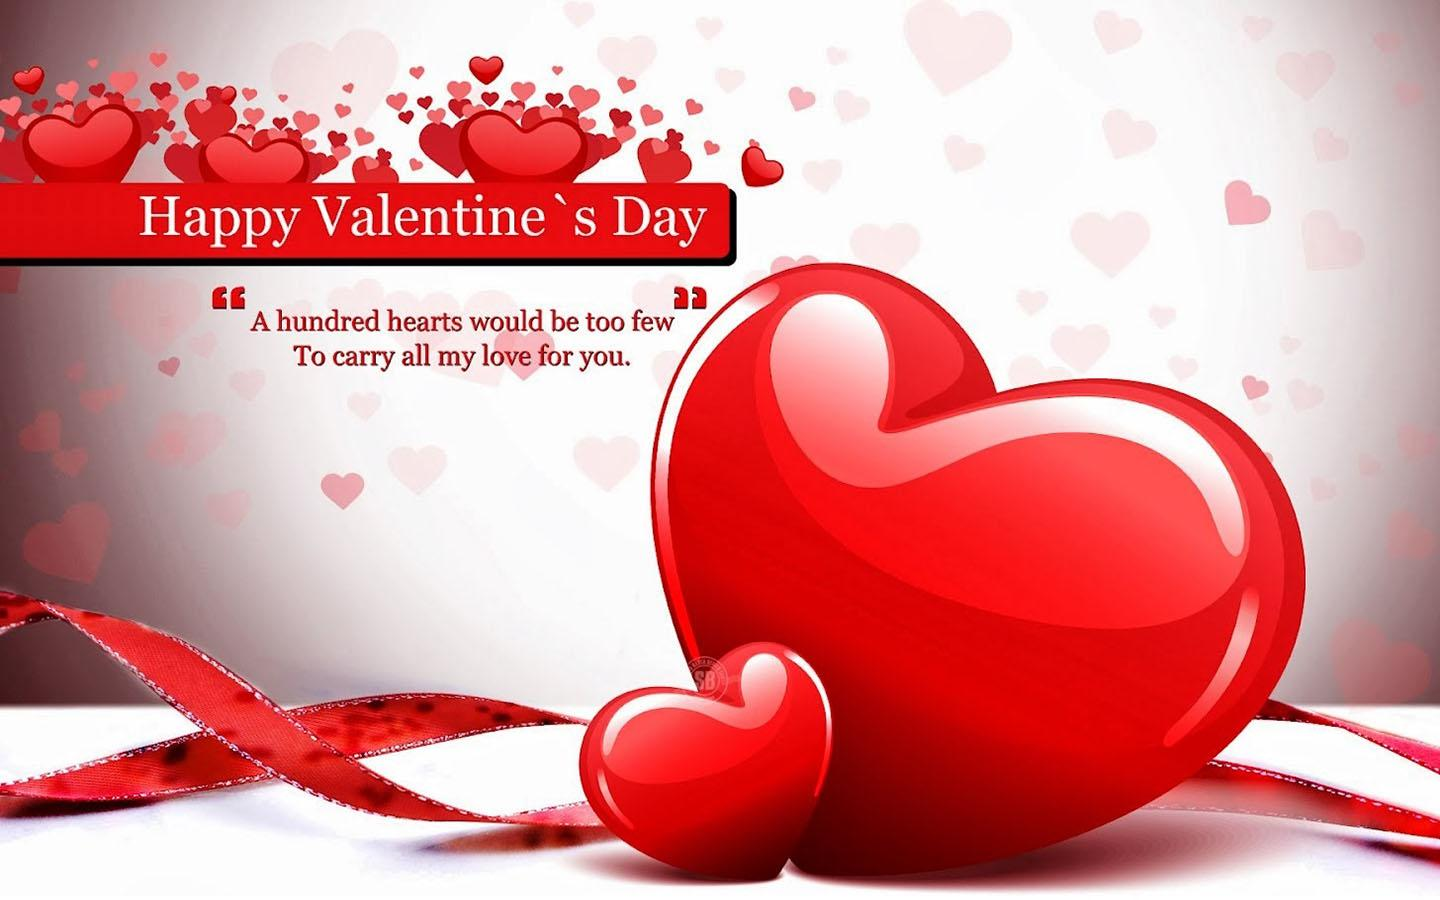 Valentine S Day Wallpapers Hd 1 01 Apk Download Android